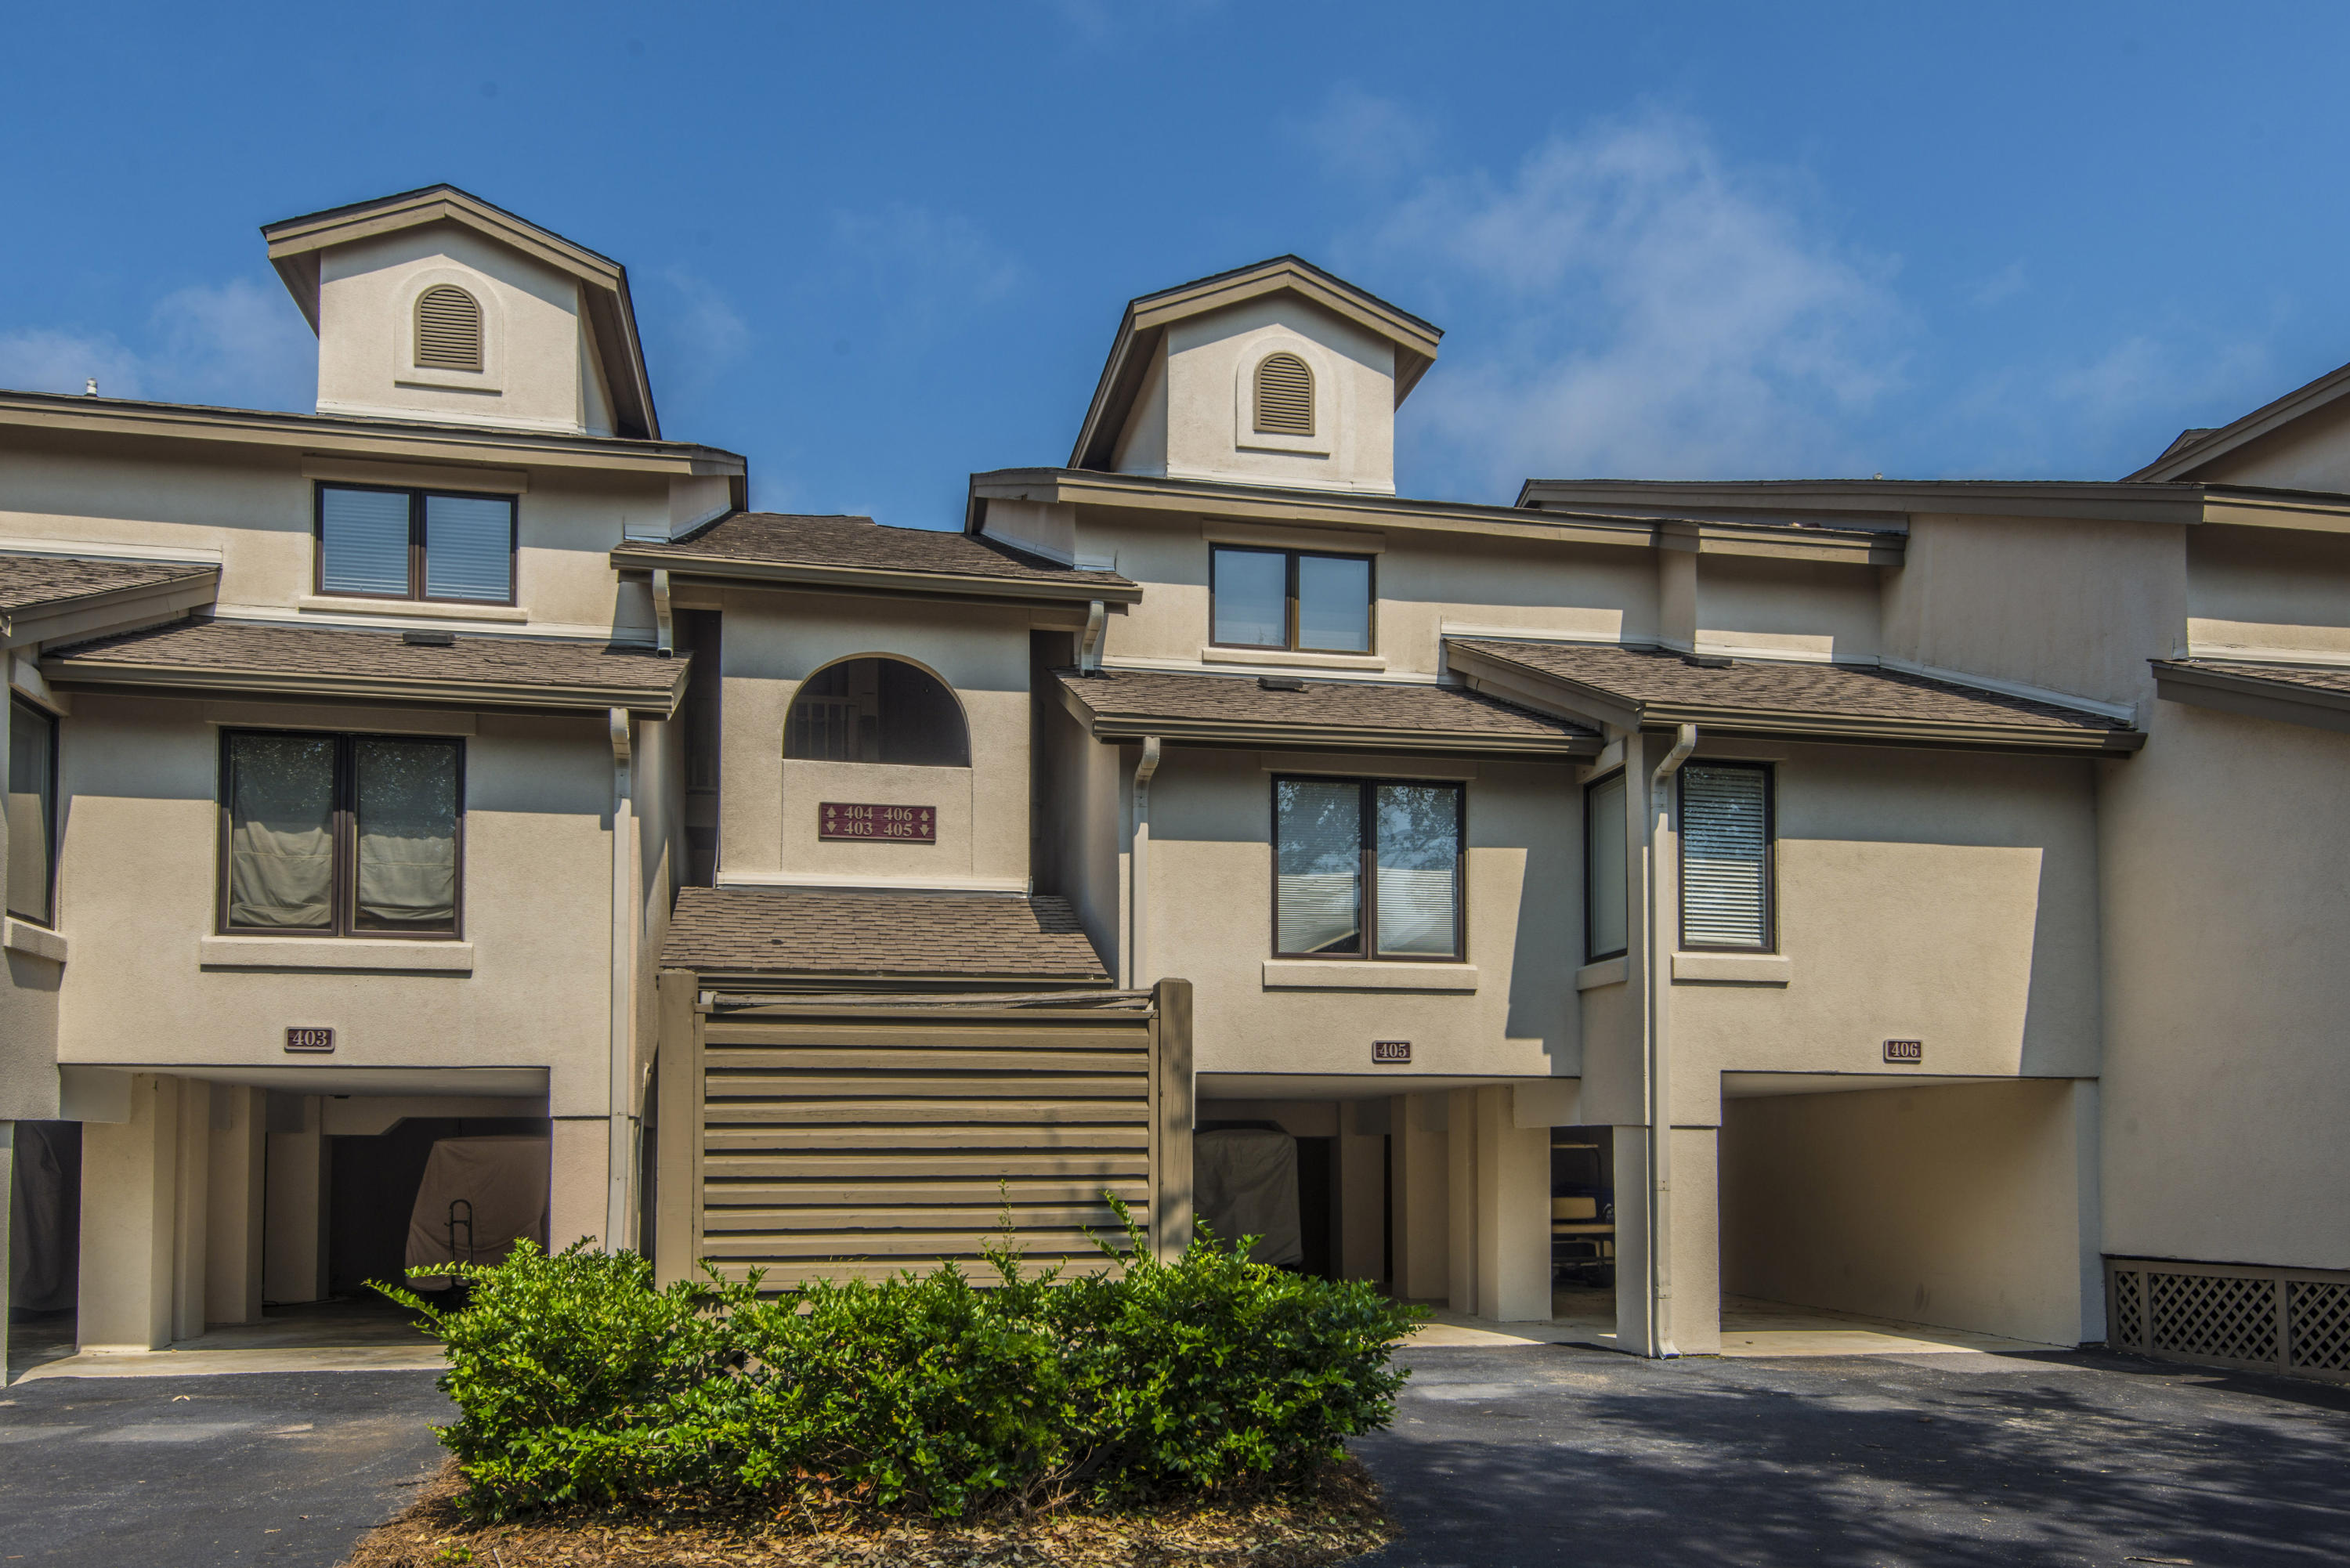 Wild Dunes Homes For Sale - 406 Yacht Harbor, Isle of Palms, SC - 0